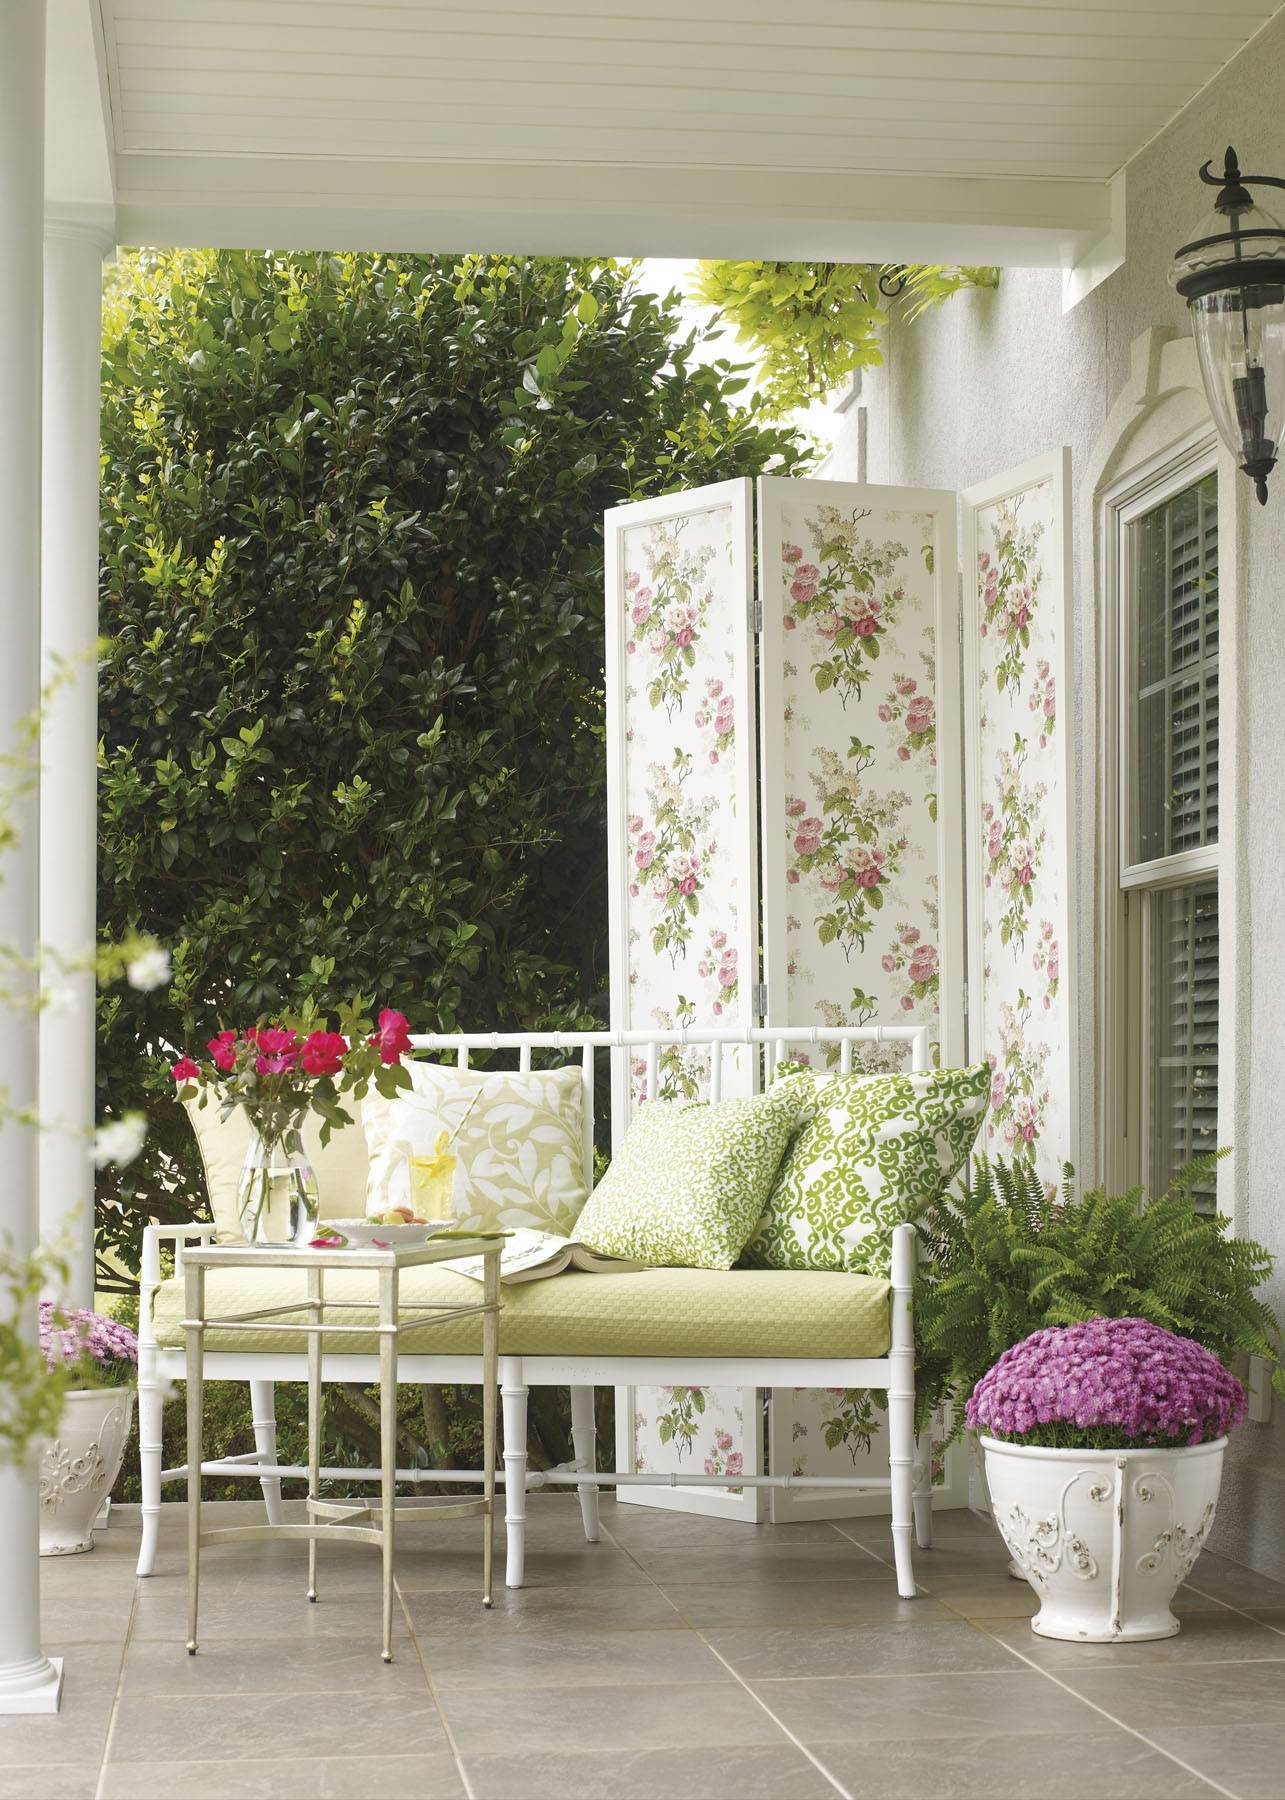 A flower-inspired wallpapered screen politely blocks the neighbor's view.